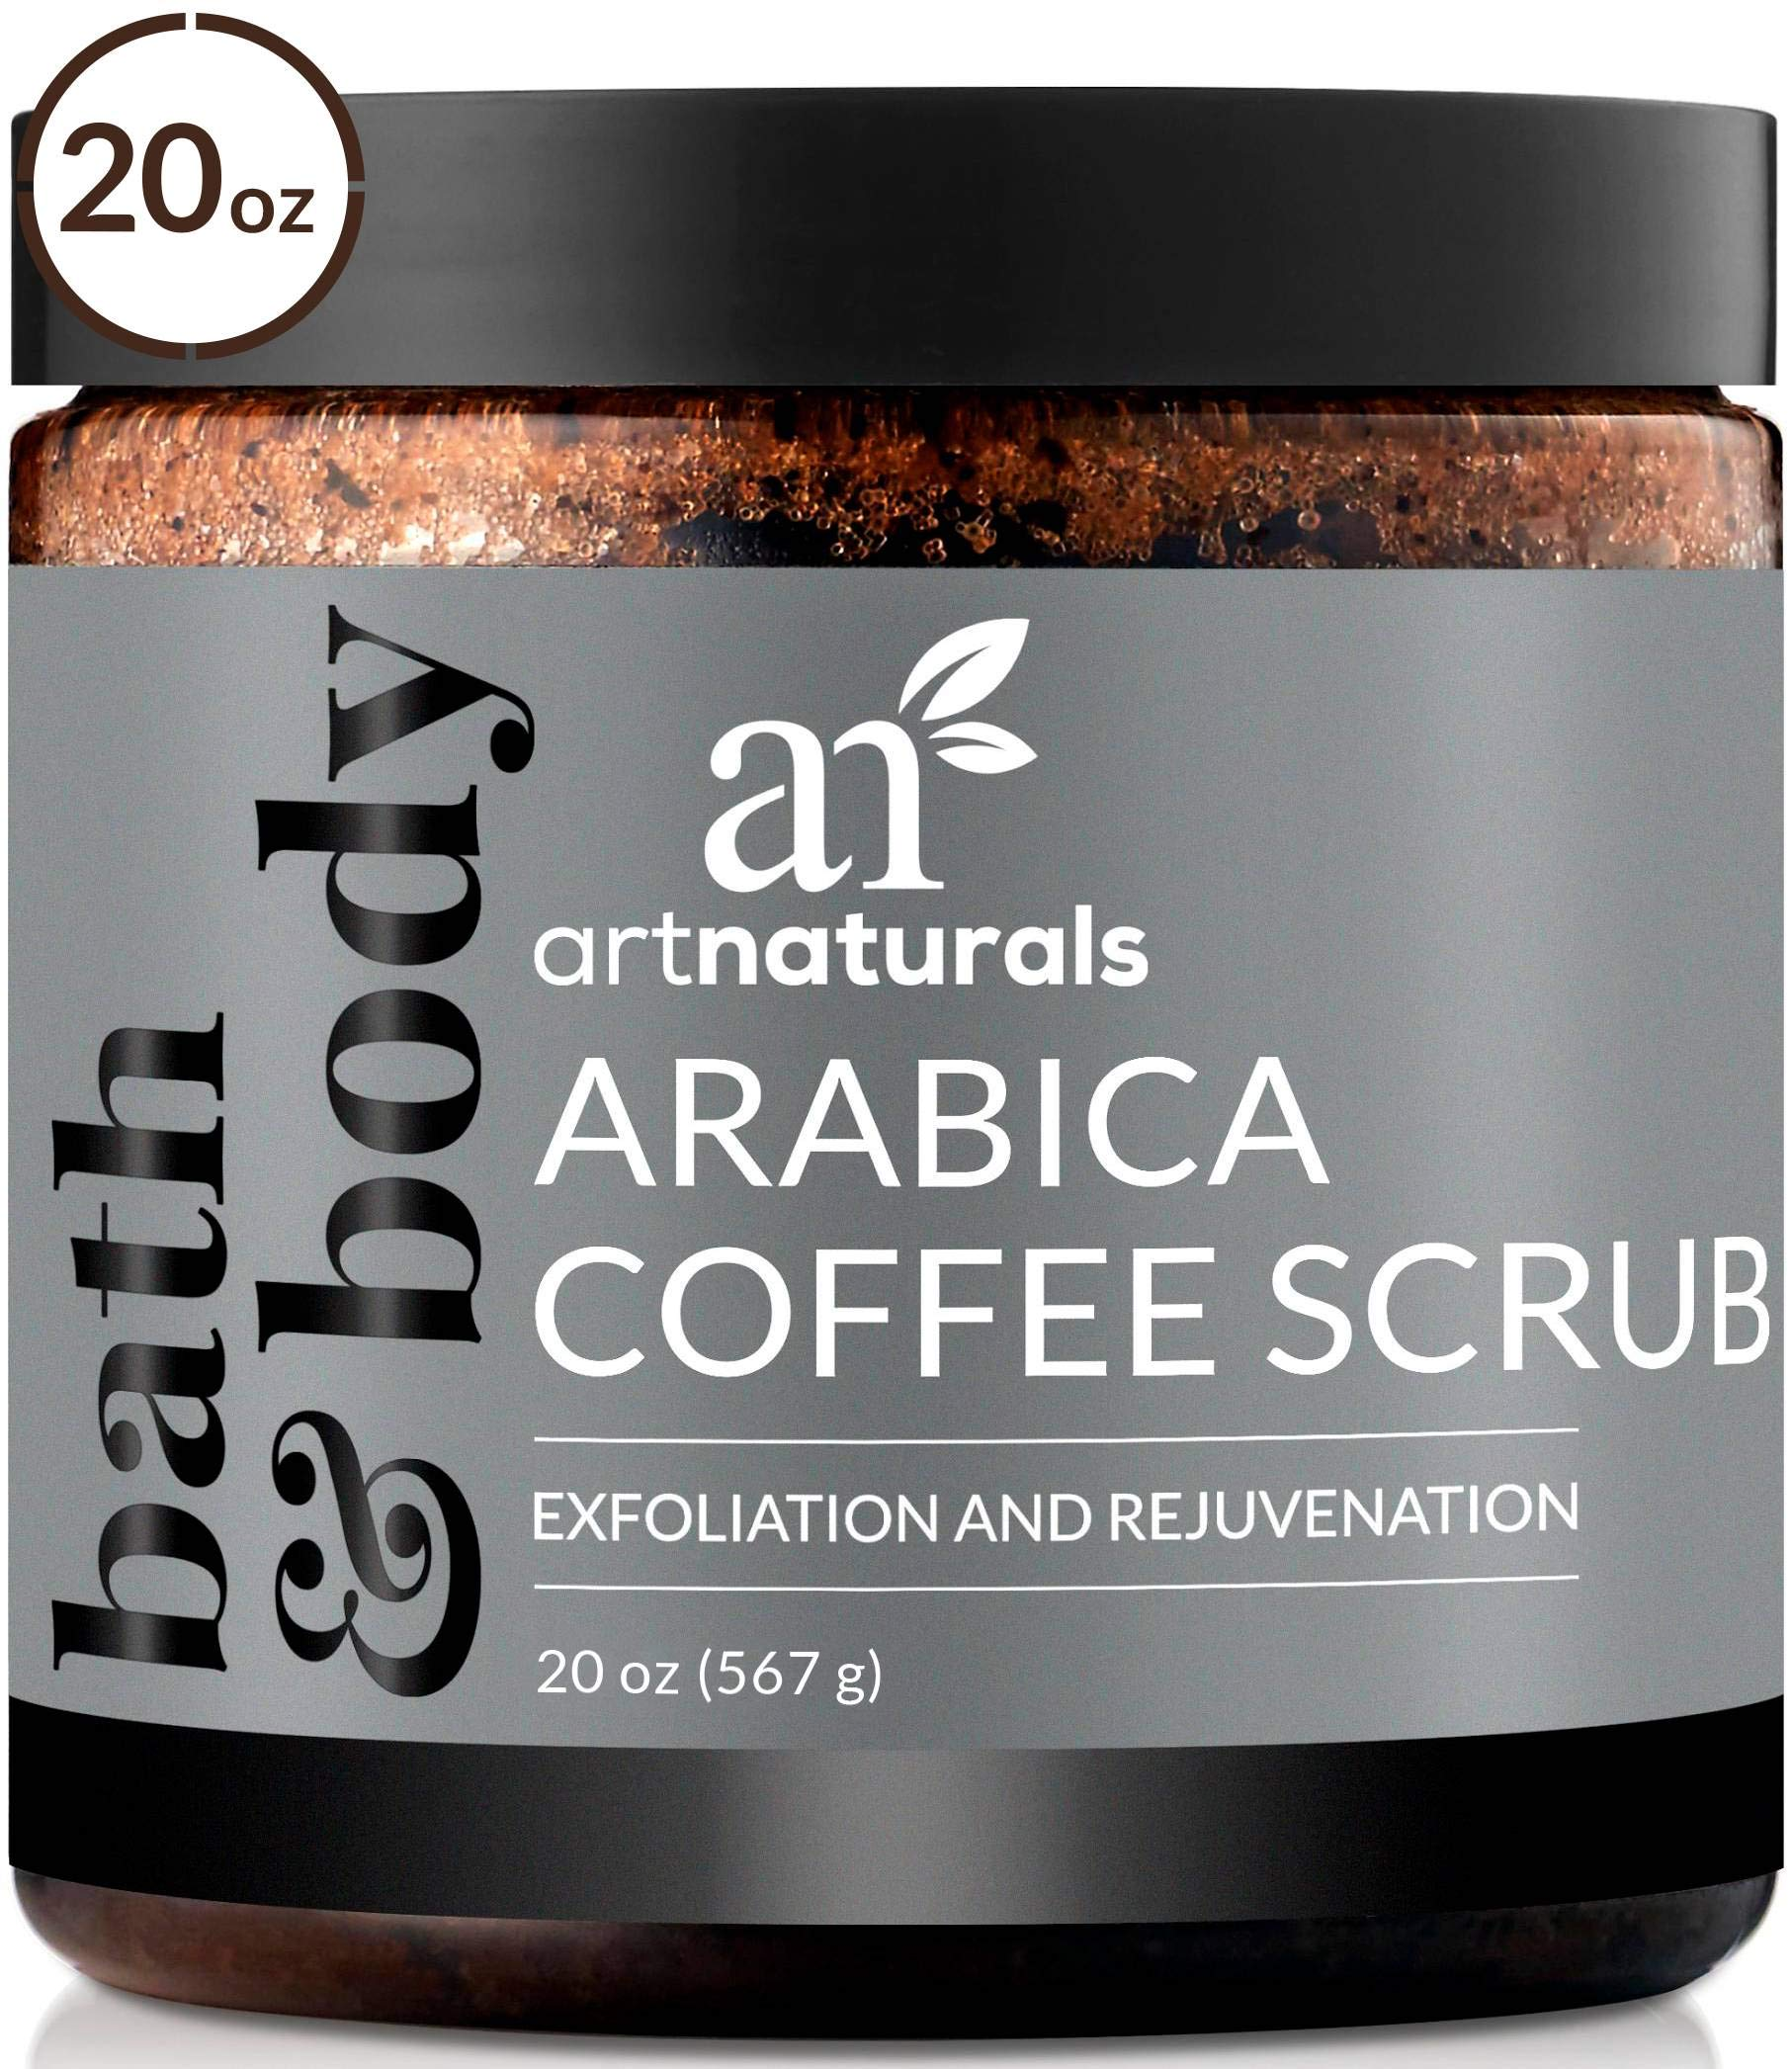 ArtNaturals Arabica Coffee Body Scrub (20 Oz / 567g) - Exfoliating Facial Treatment for Varicose Veins, Cellulite, Stretch Marks Spider Vein - Deep Skin, Butt, legs and Face Sugar Exfoliator with Caffeine